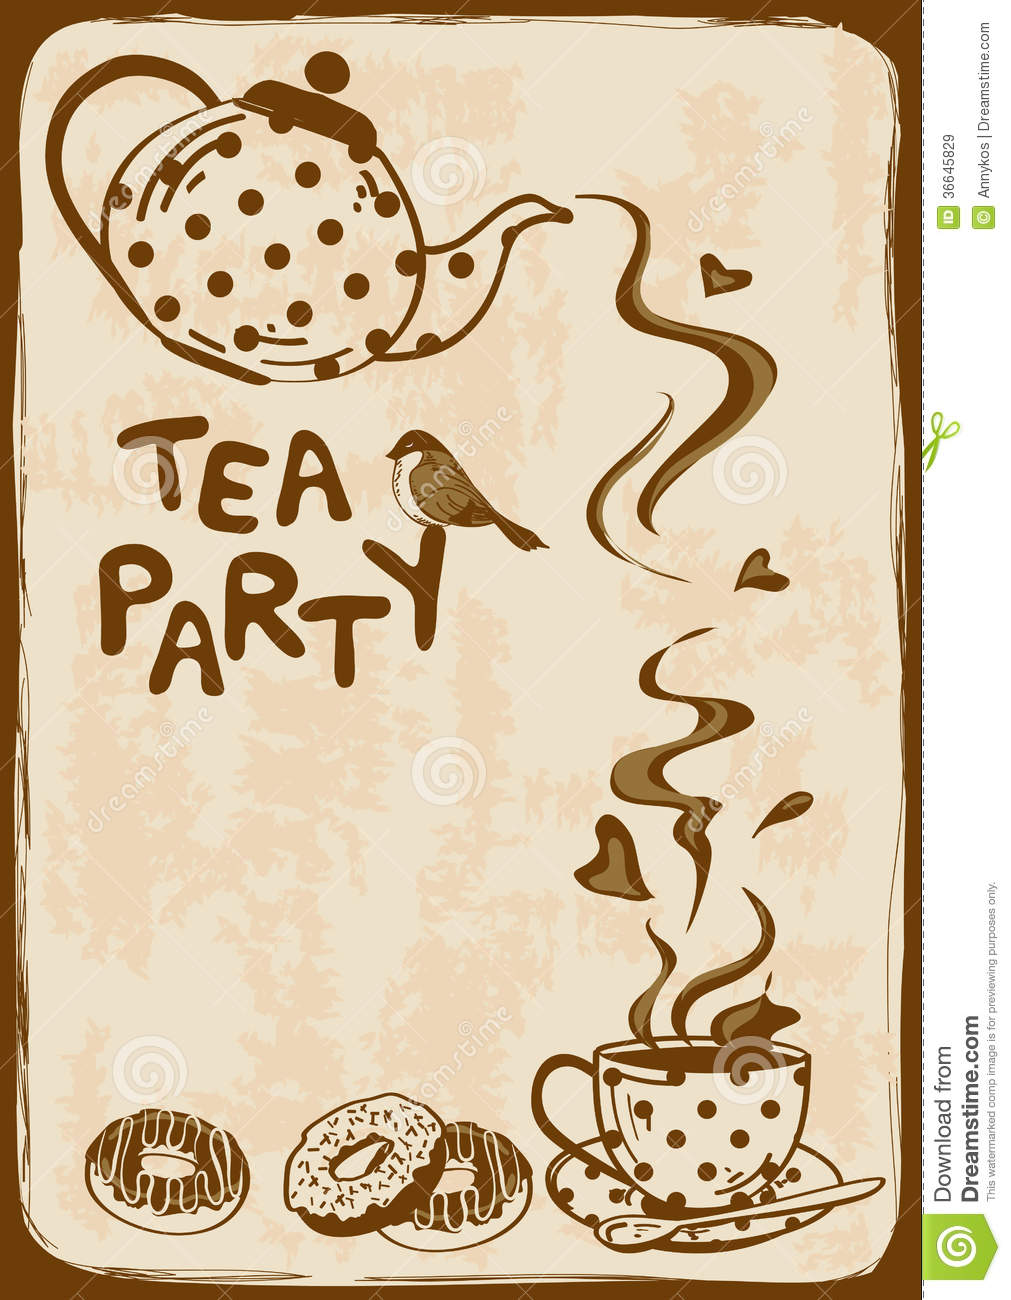 Tea Party Invitation With Teapot And Teacup Royalty Free ...